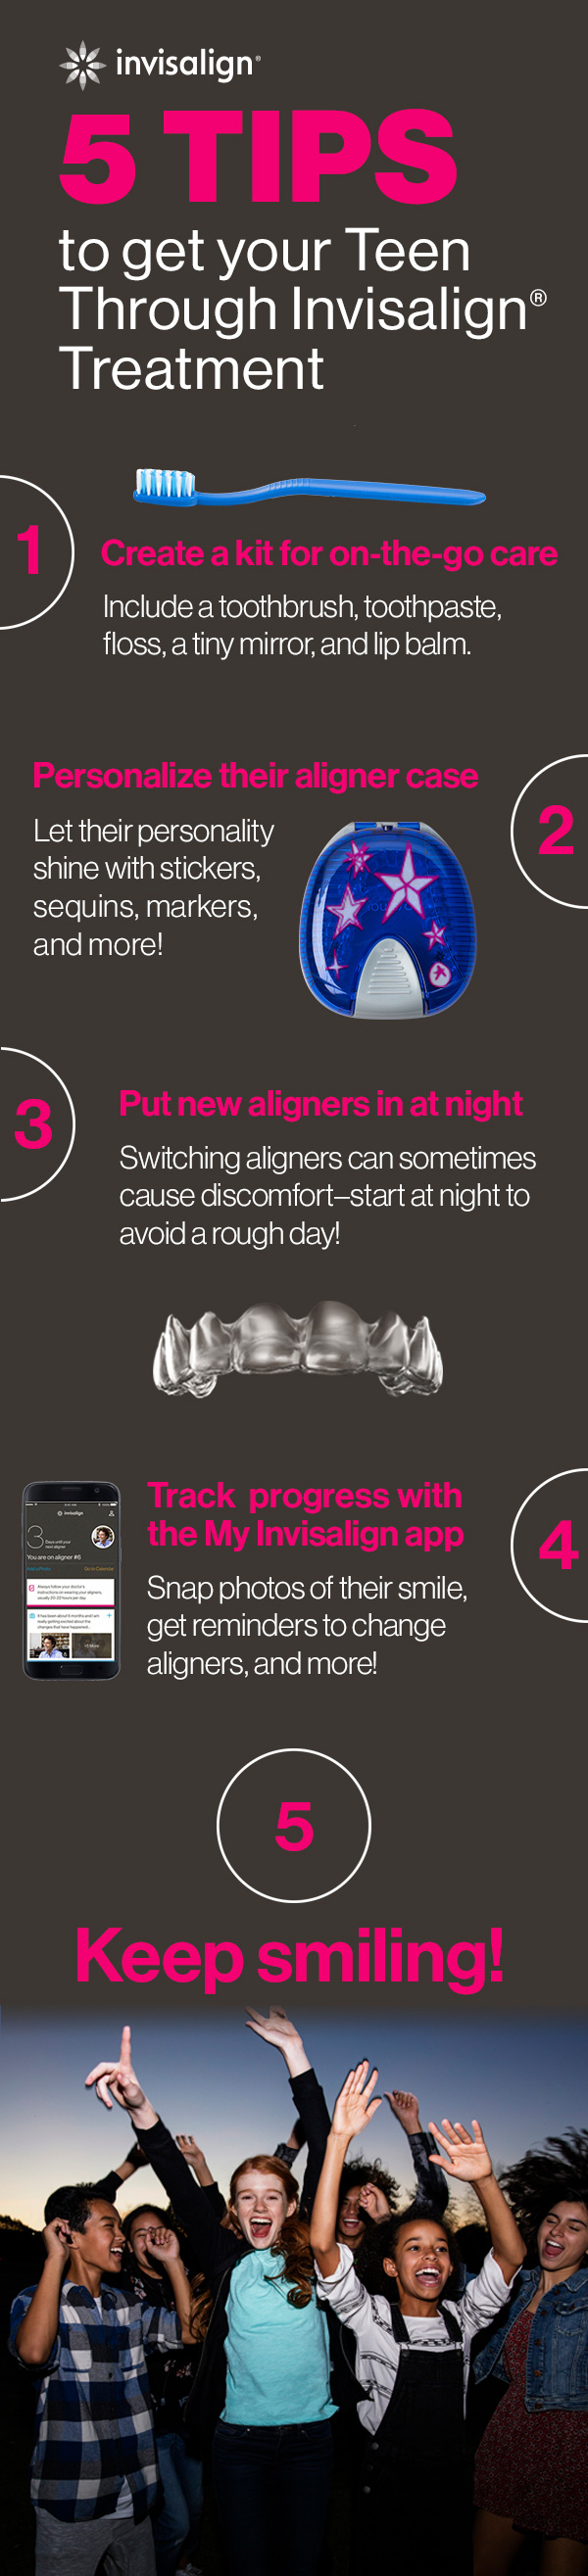 5 tips to get your teen through Invisalign Treantment